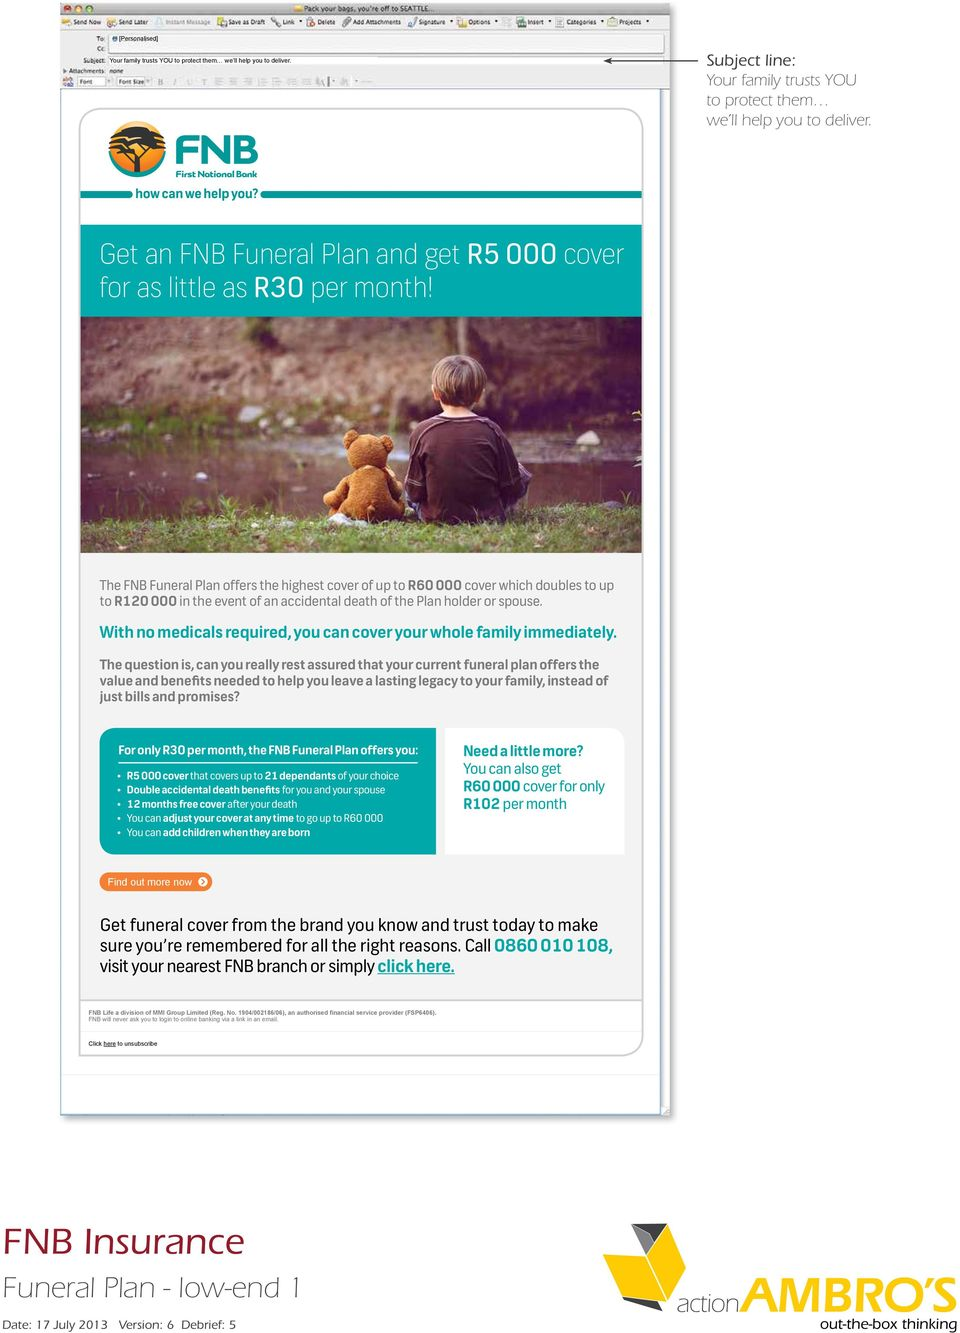 The FNB Funeral Plan offers the highest cover of up to R60 000 cover which doubles to up to R120 000 in the event of an accidental death of the Plan holder or spouse.